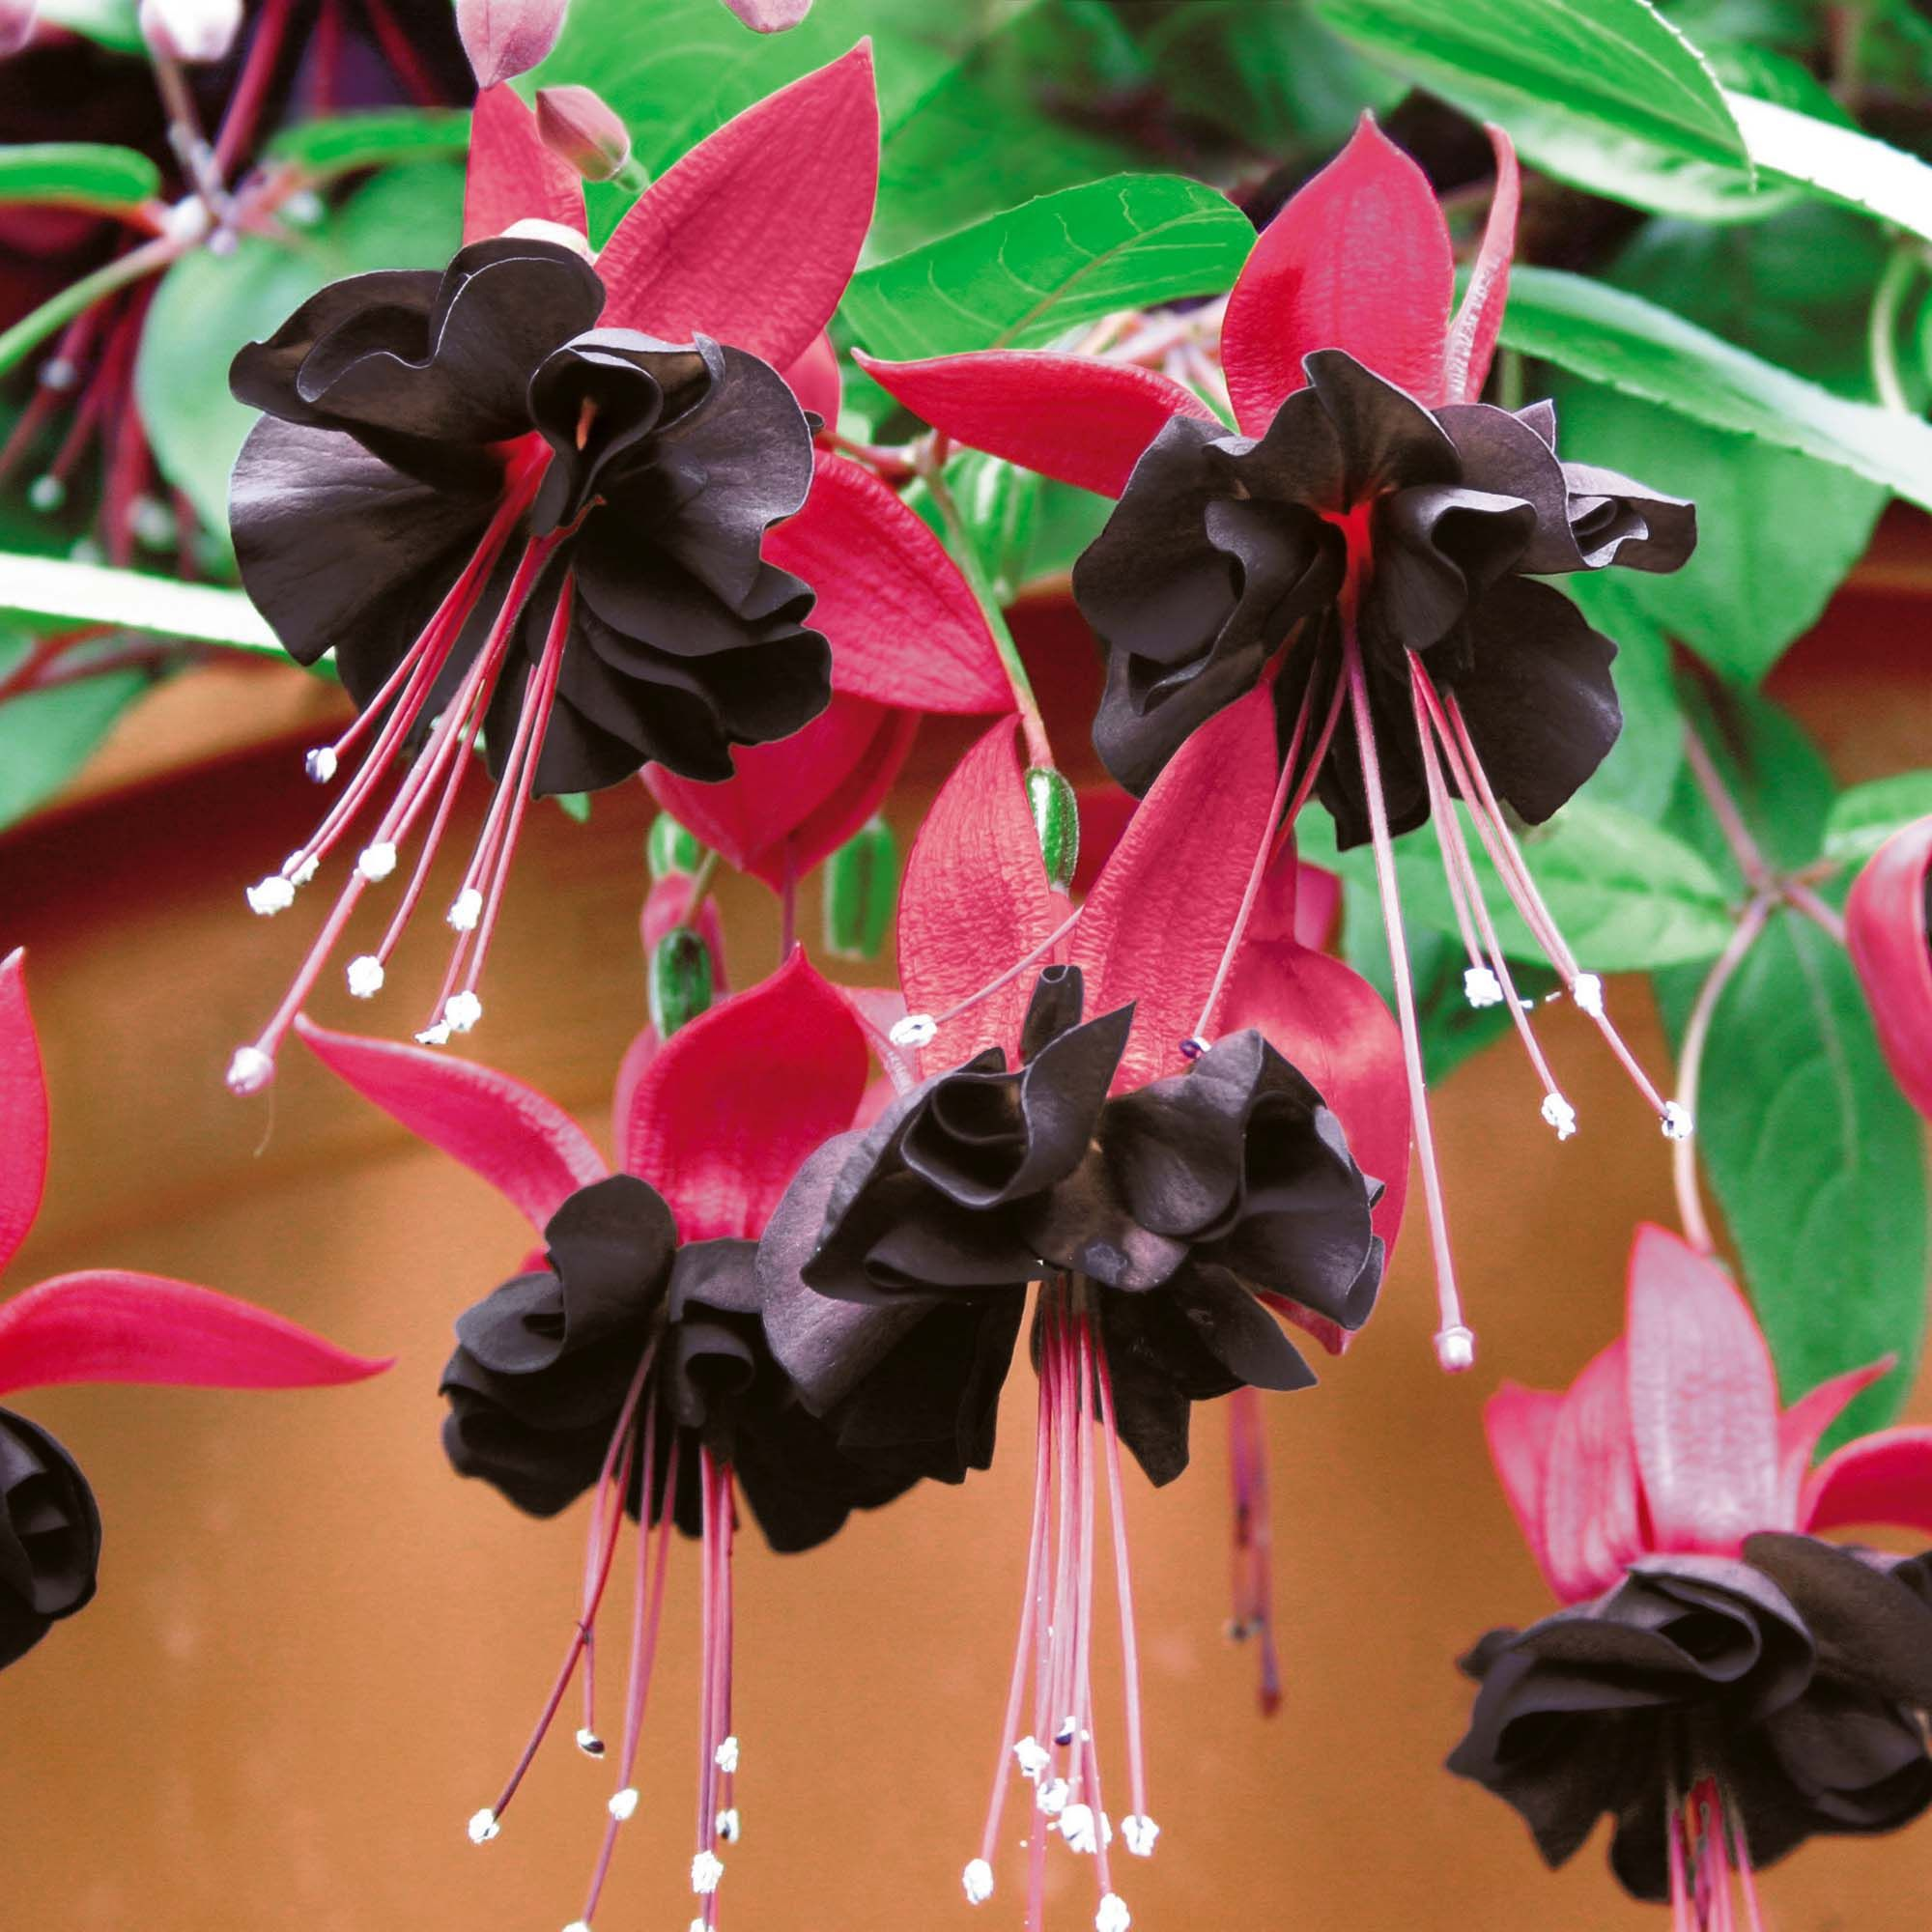 Fuchsia  Roesse Blacky I finally found someone in the US